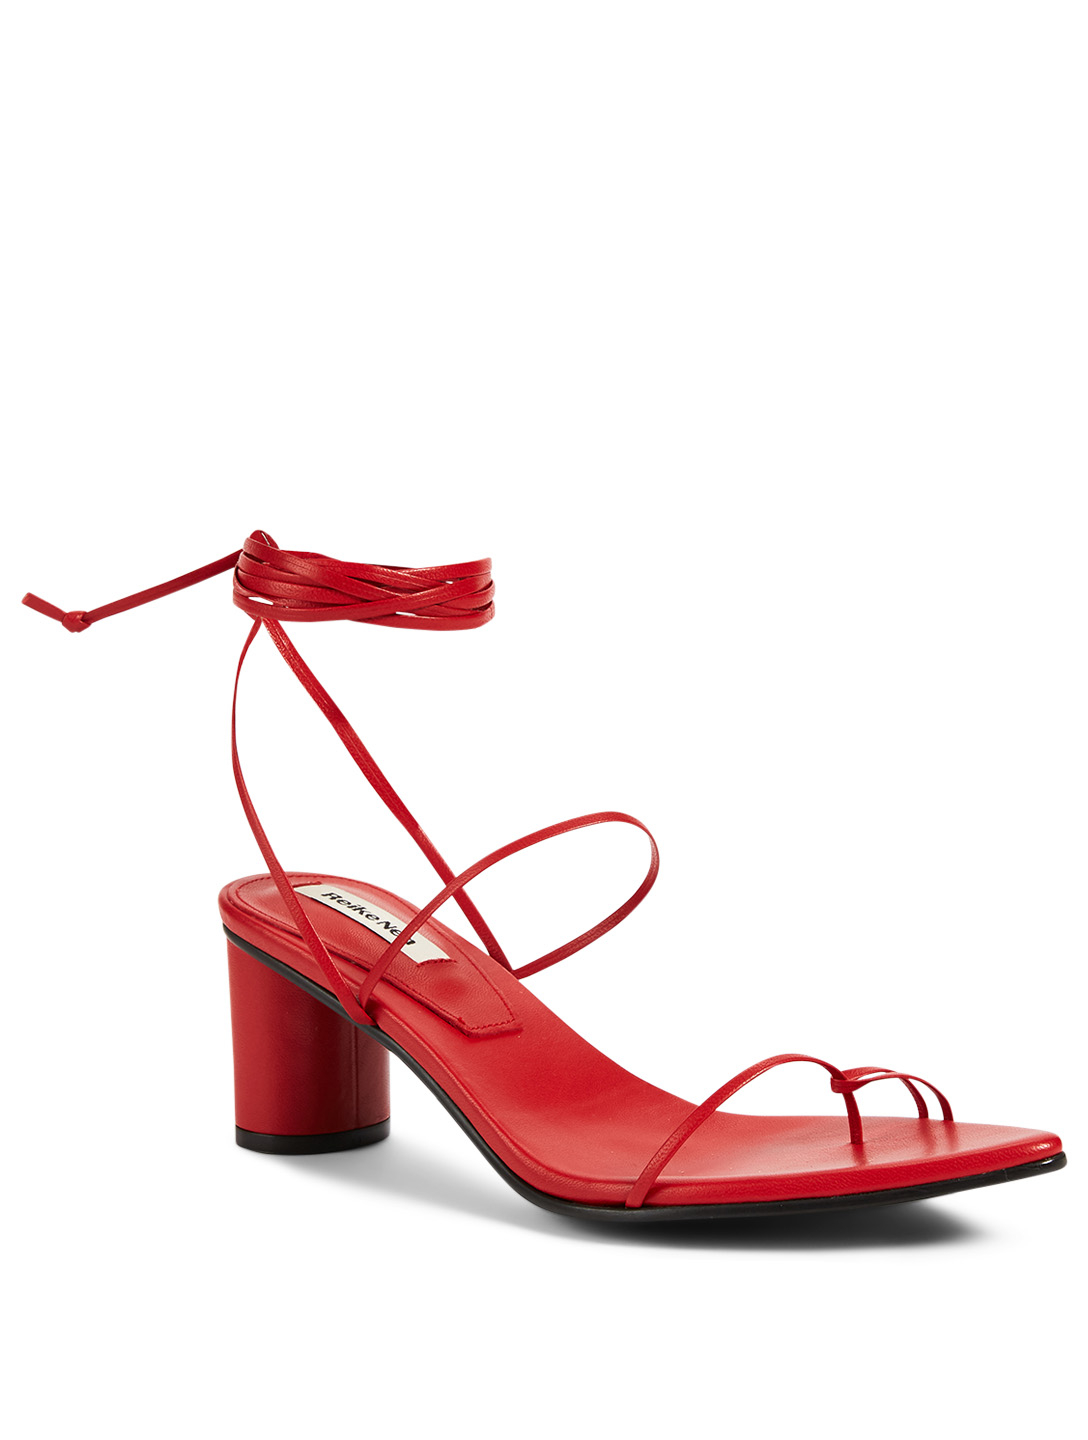 REIKE NEN Odd Pair Leather Heeled Sandals Femmes Rouge